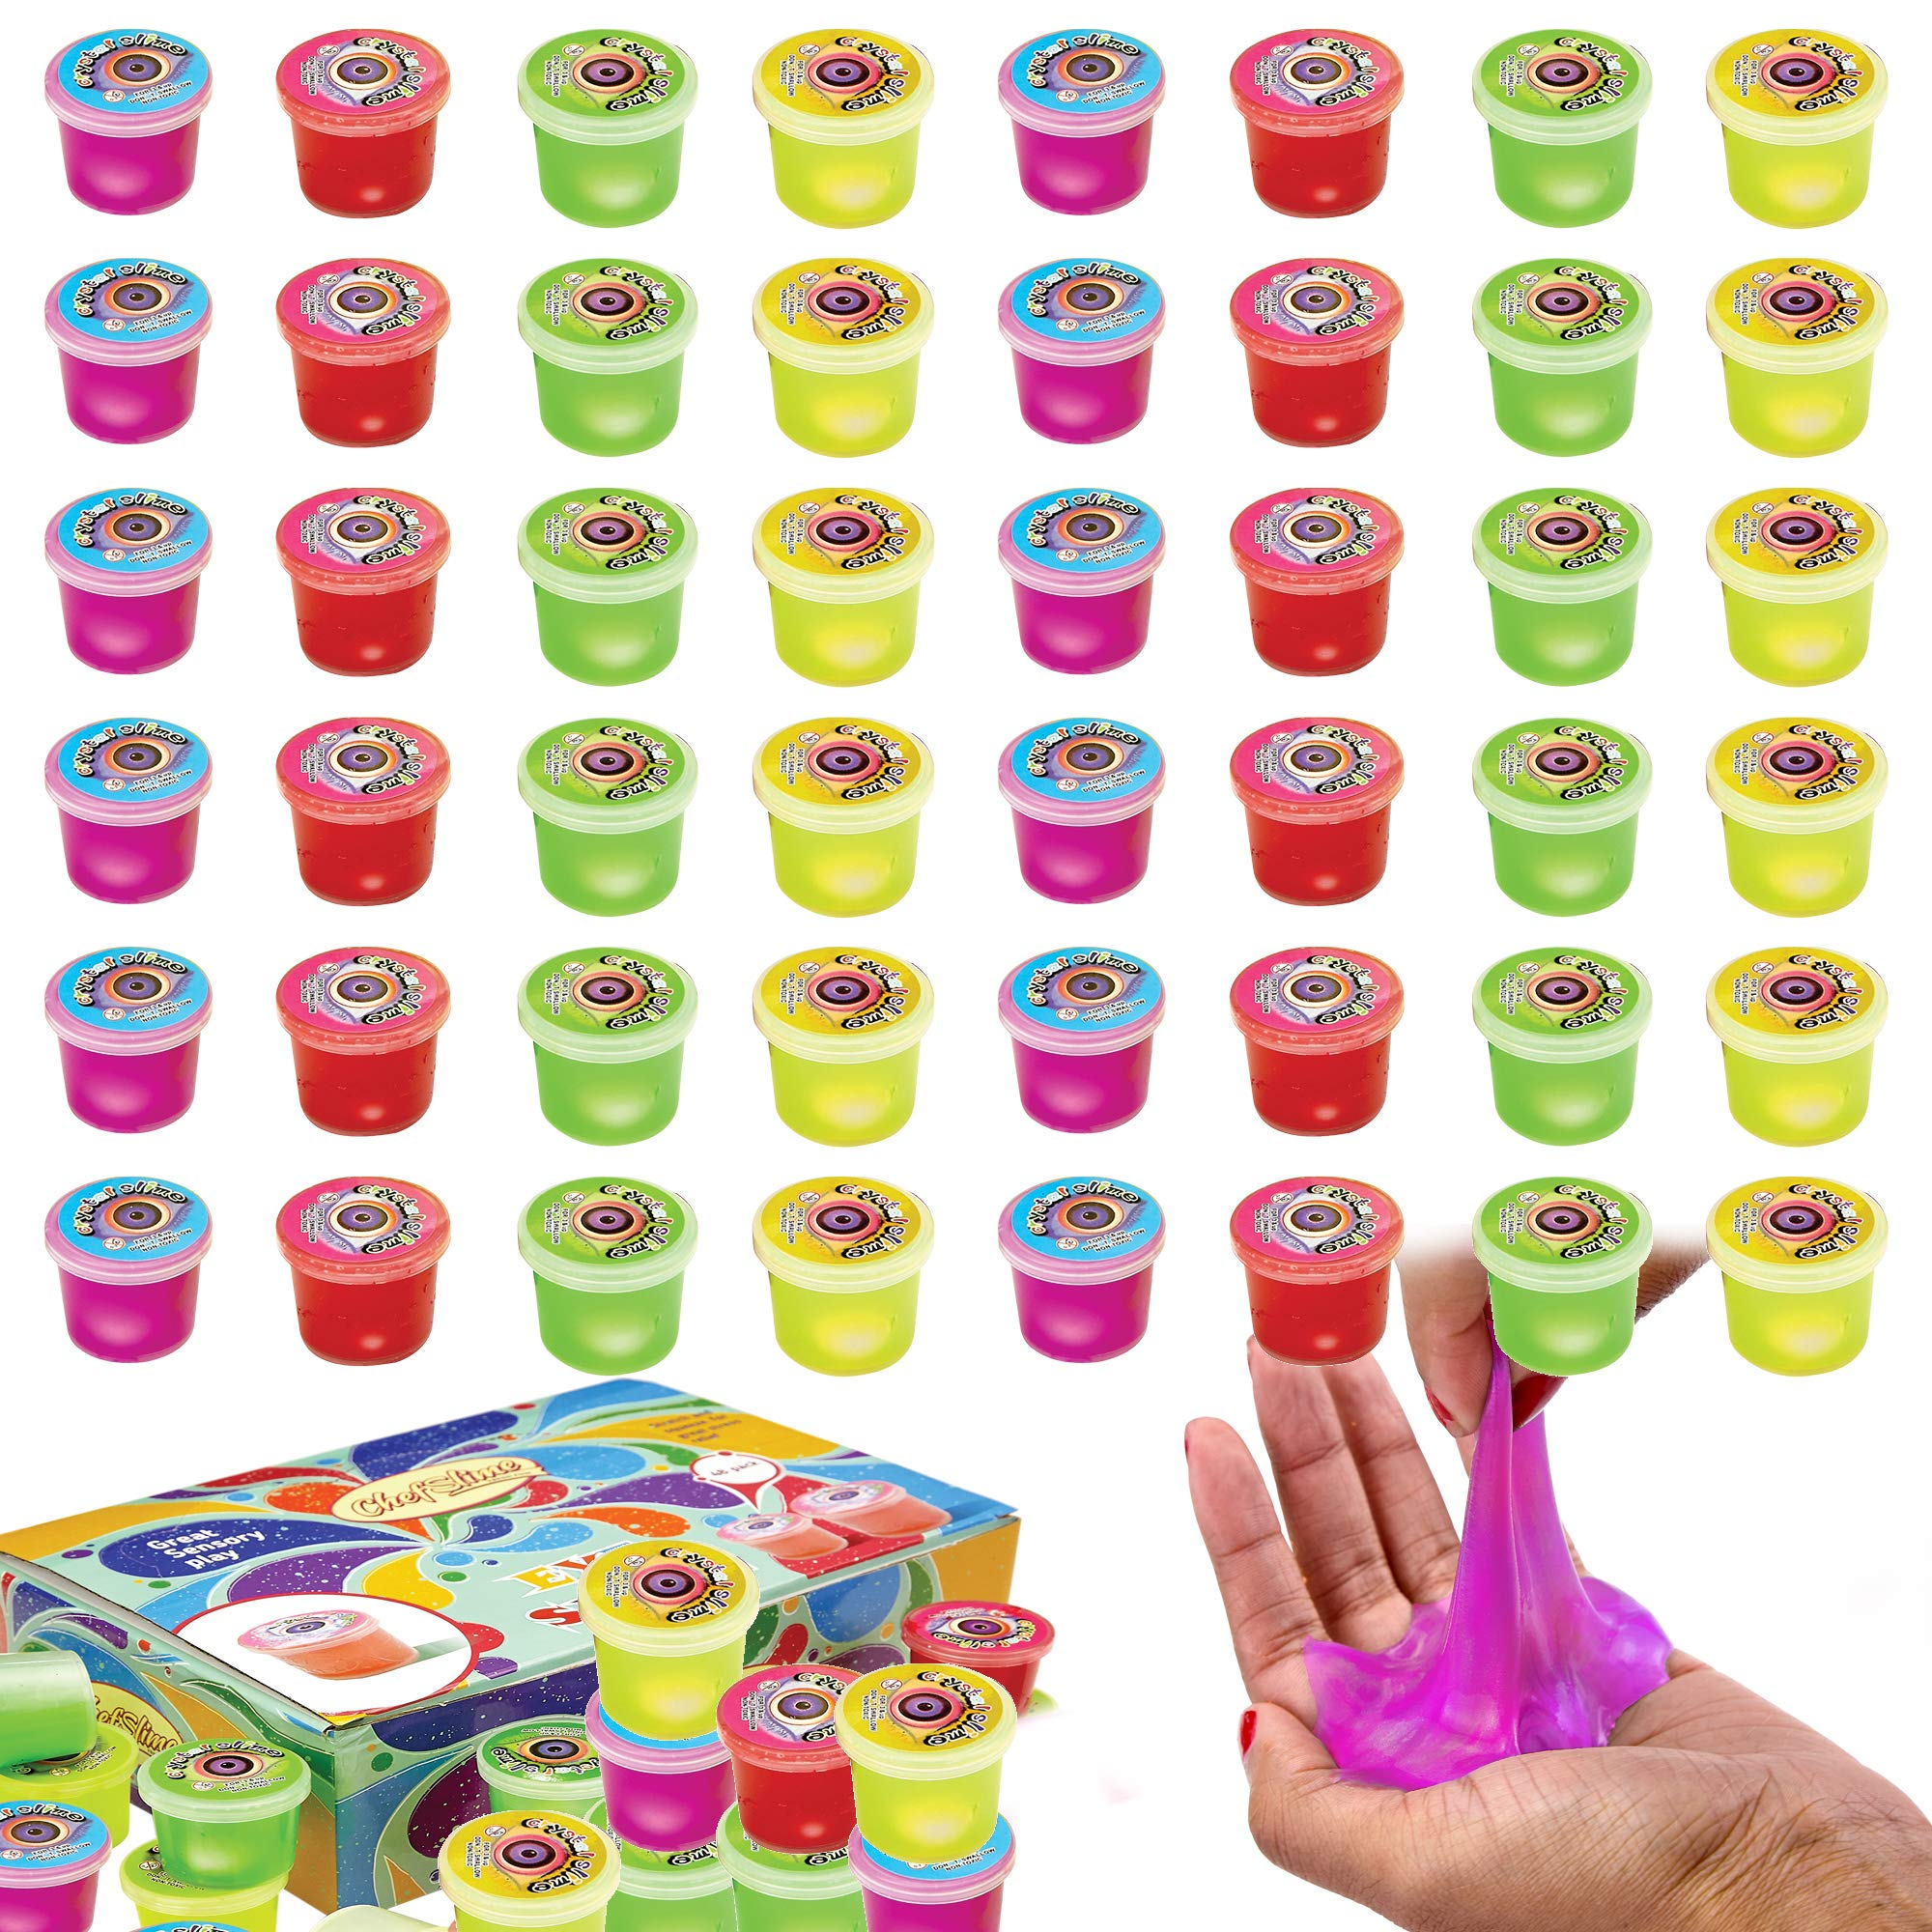 ChefSlime Eye Slime Cool Putty - Non Sticky, Stress & Anxiety Relief, Wet, Super Soft Sludge Toy with an Eye Ball inside - party favor for Kids and Adults - | JUMBO PACK of 48 PCS by ChefSlime